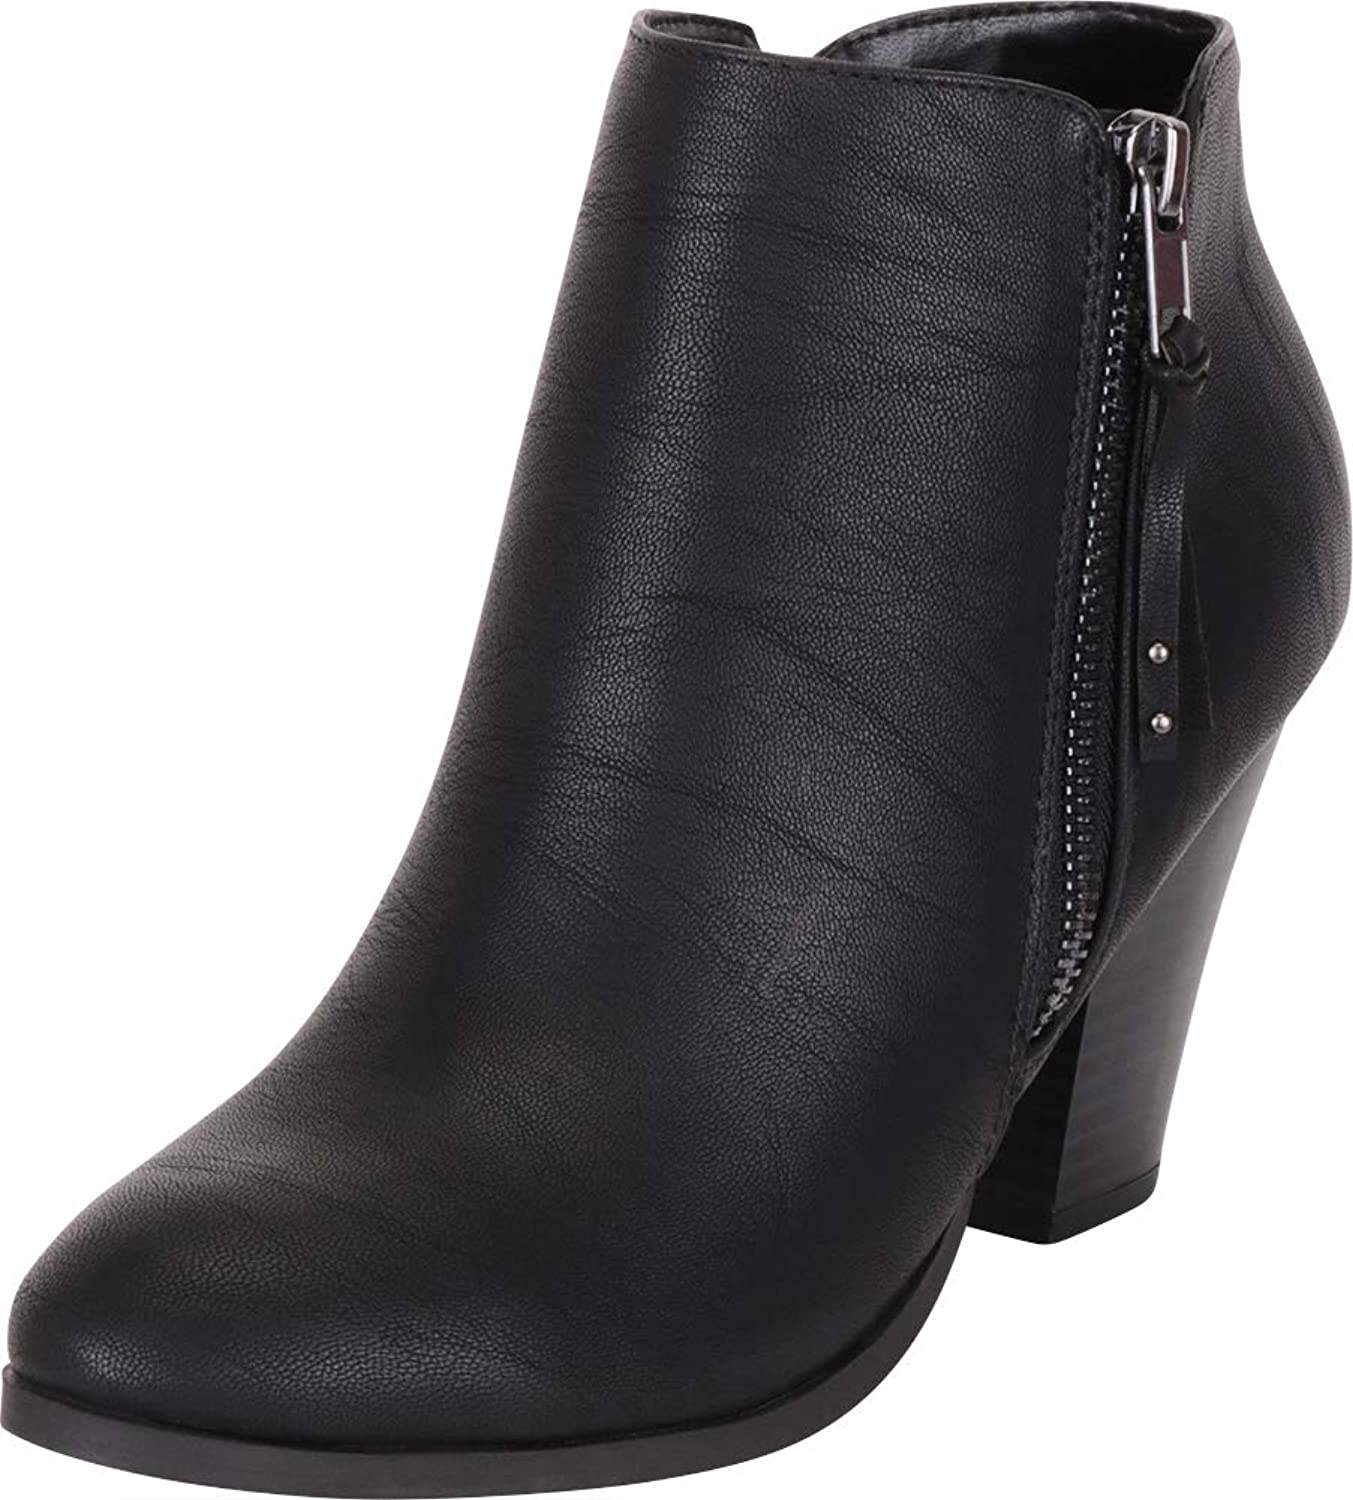 Cambridge Select Women's Western Chunky Stacked High Heel Ankle Bootie